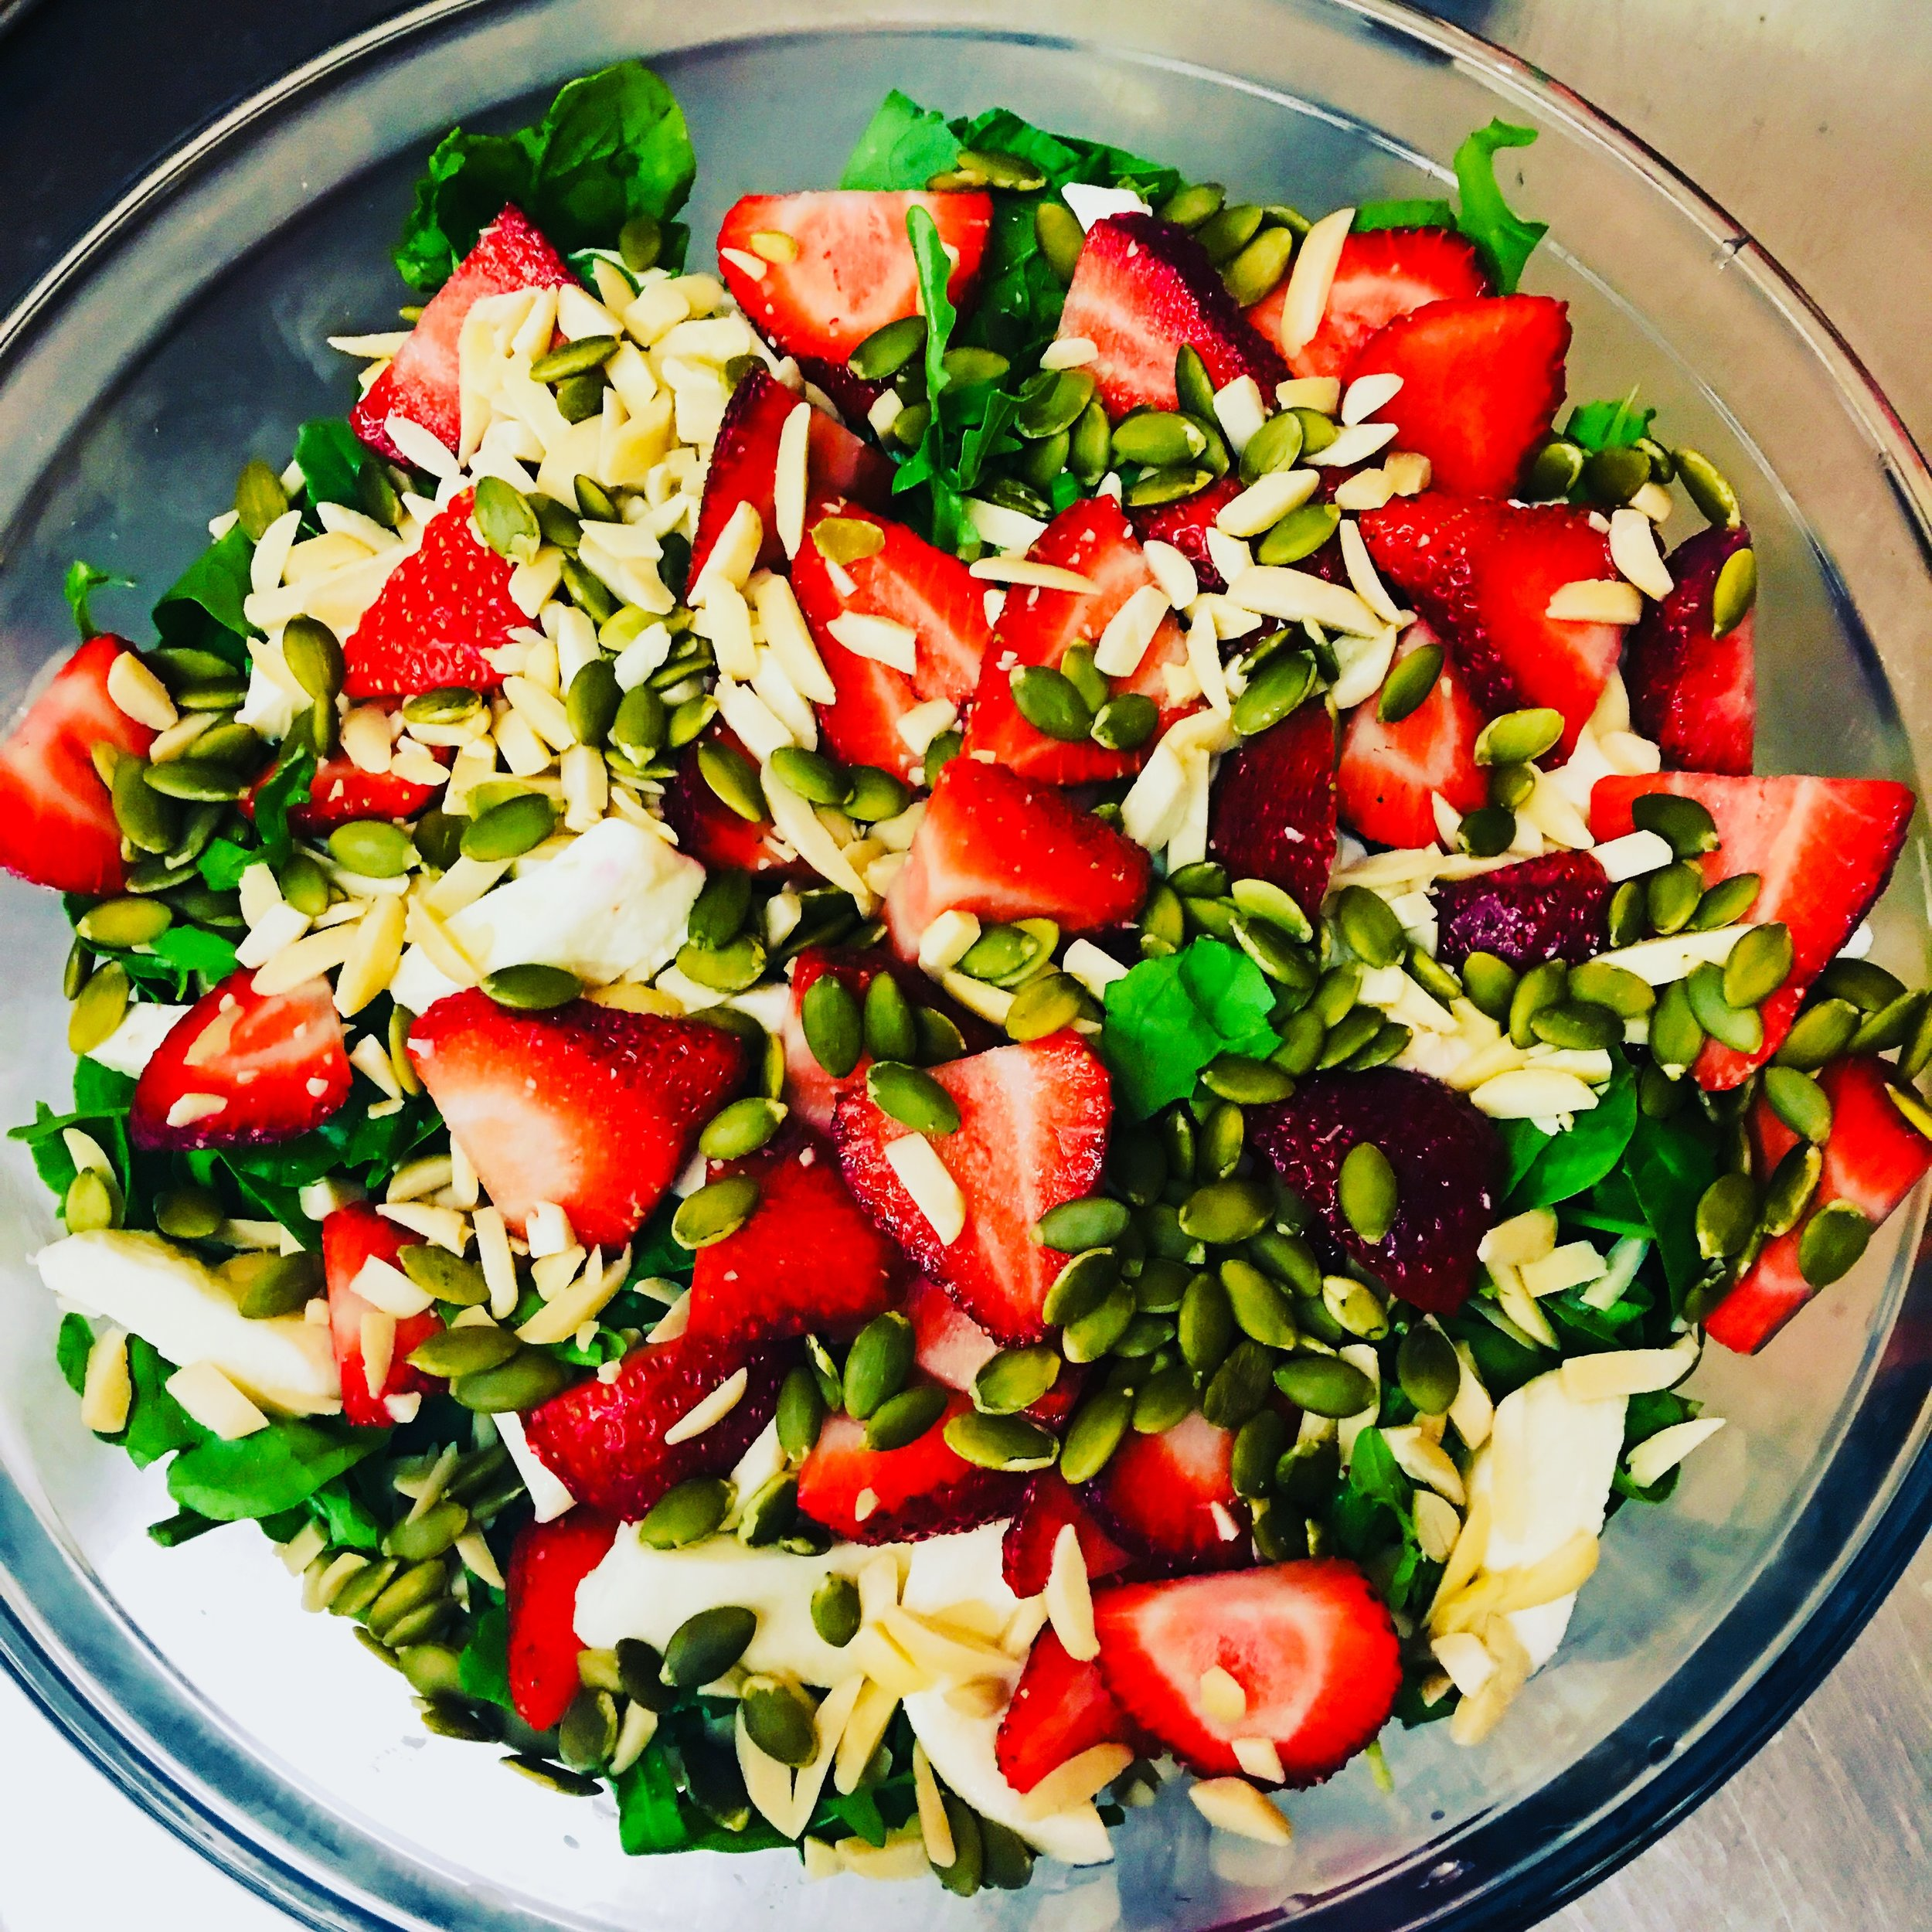 Juicy strawberries and crunchy pumpkin seeds. Add a little cheese, and you'll be pleased by this simple summer salad!